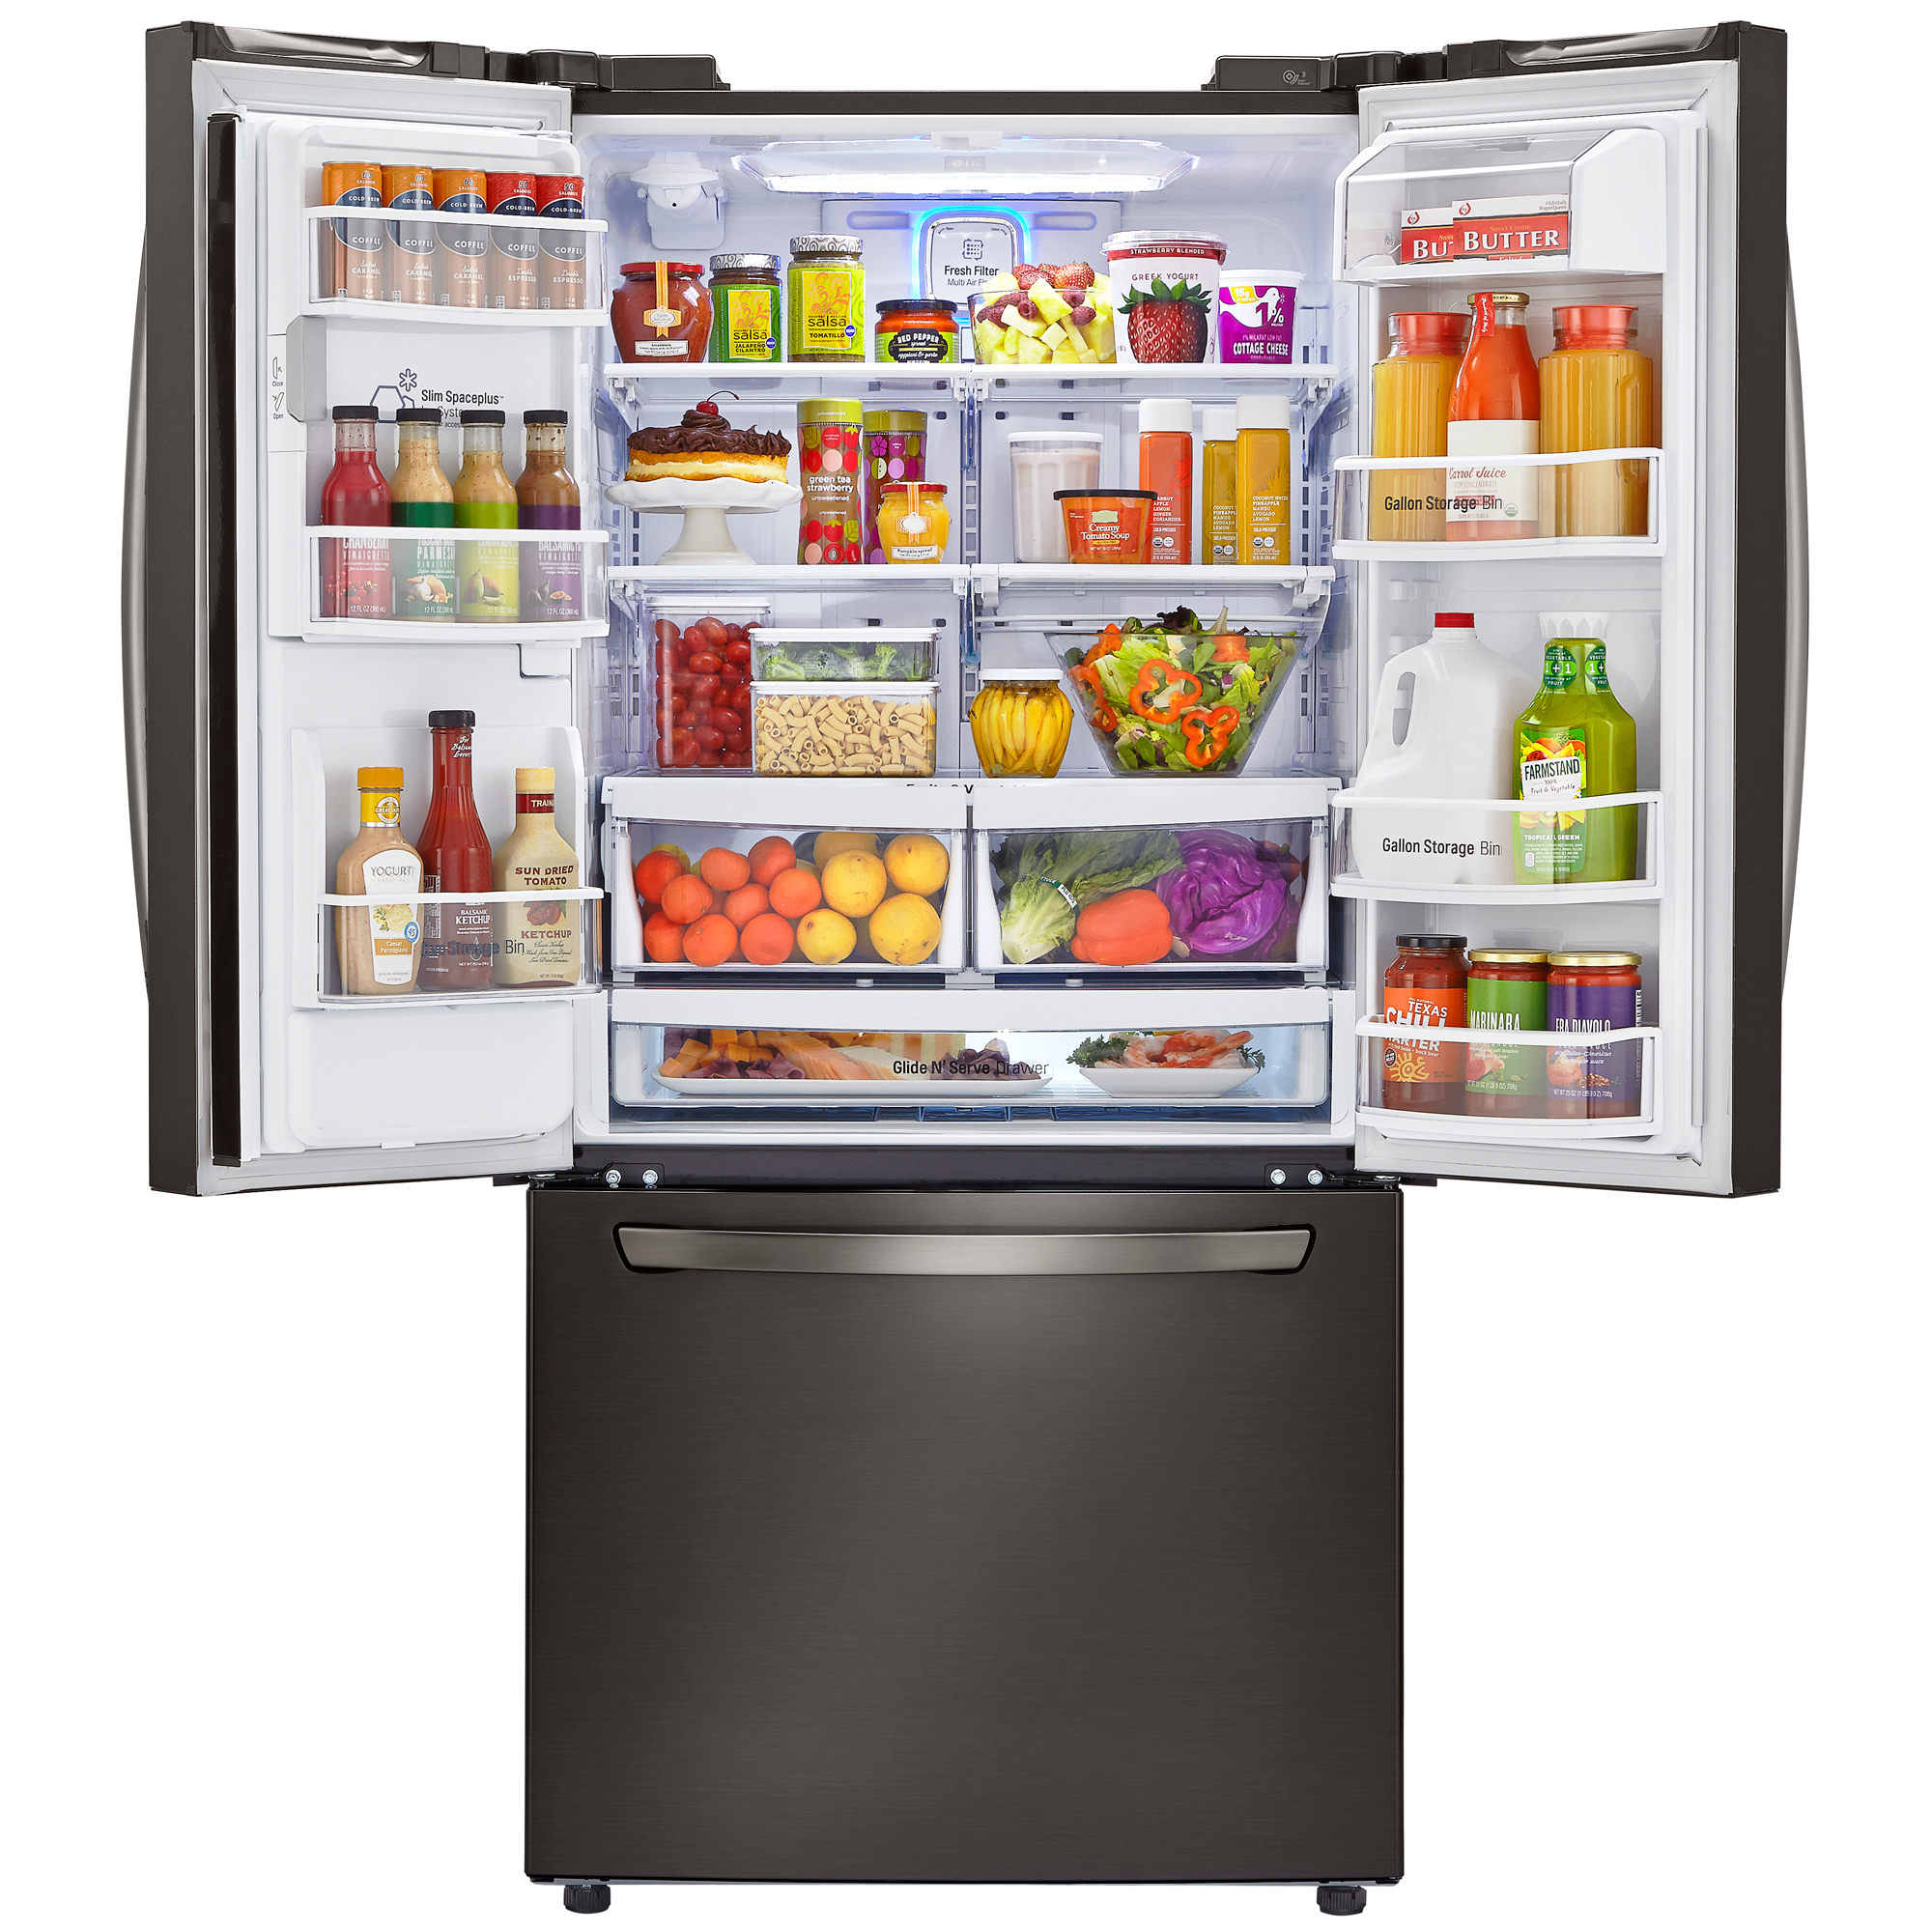 "LG LFXS24623D 24.2 Cu. Ft. 33"" Wide French Door Refrigerator w/ Ice & Water – Black Stainless"